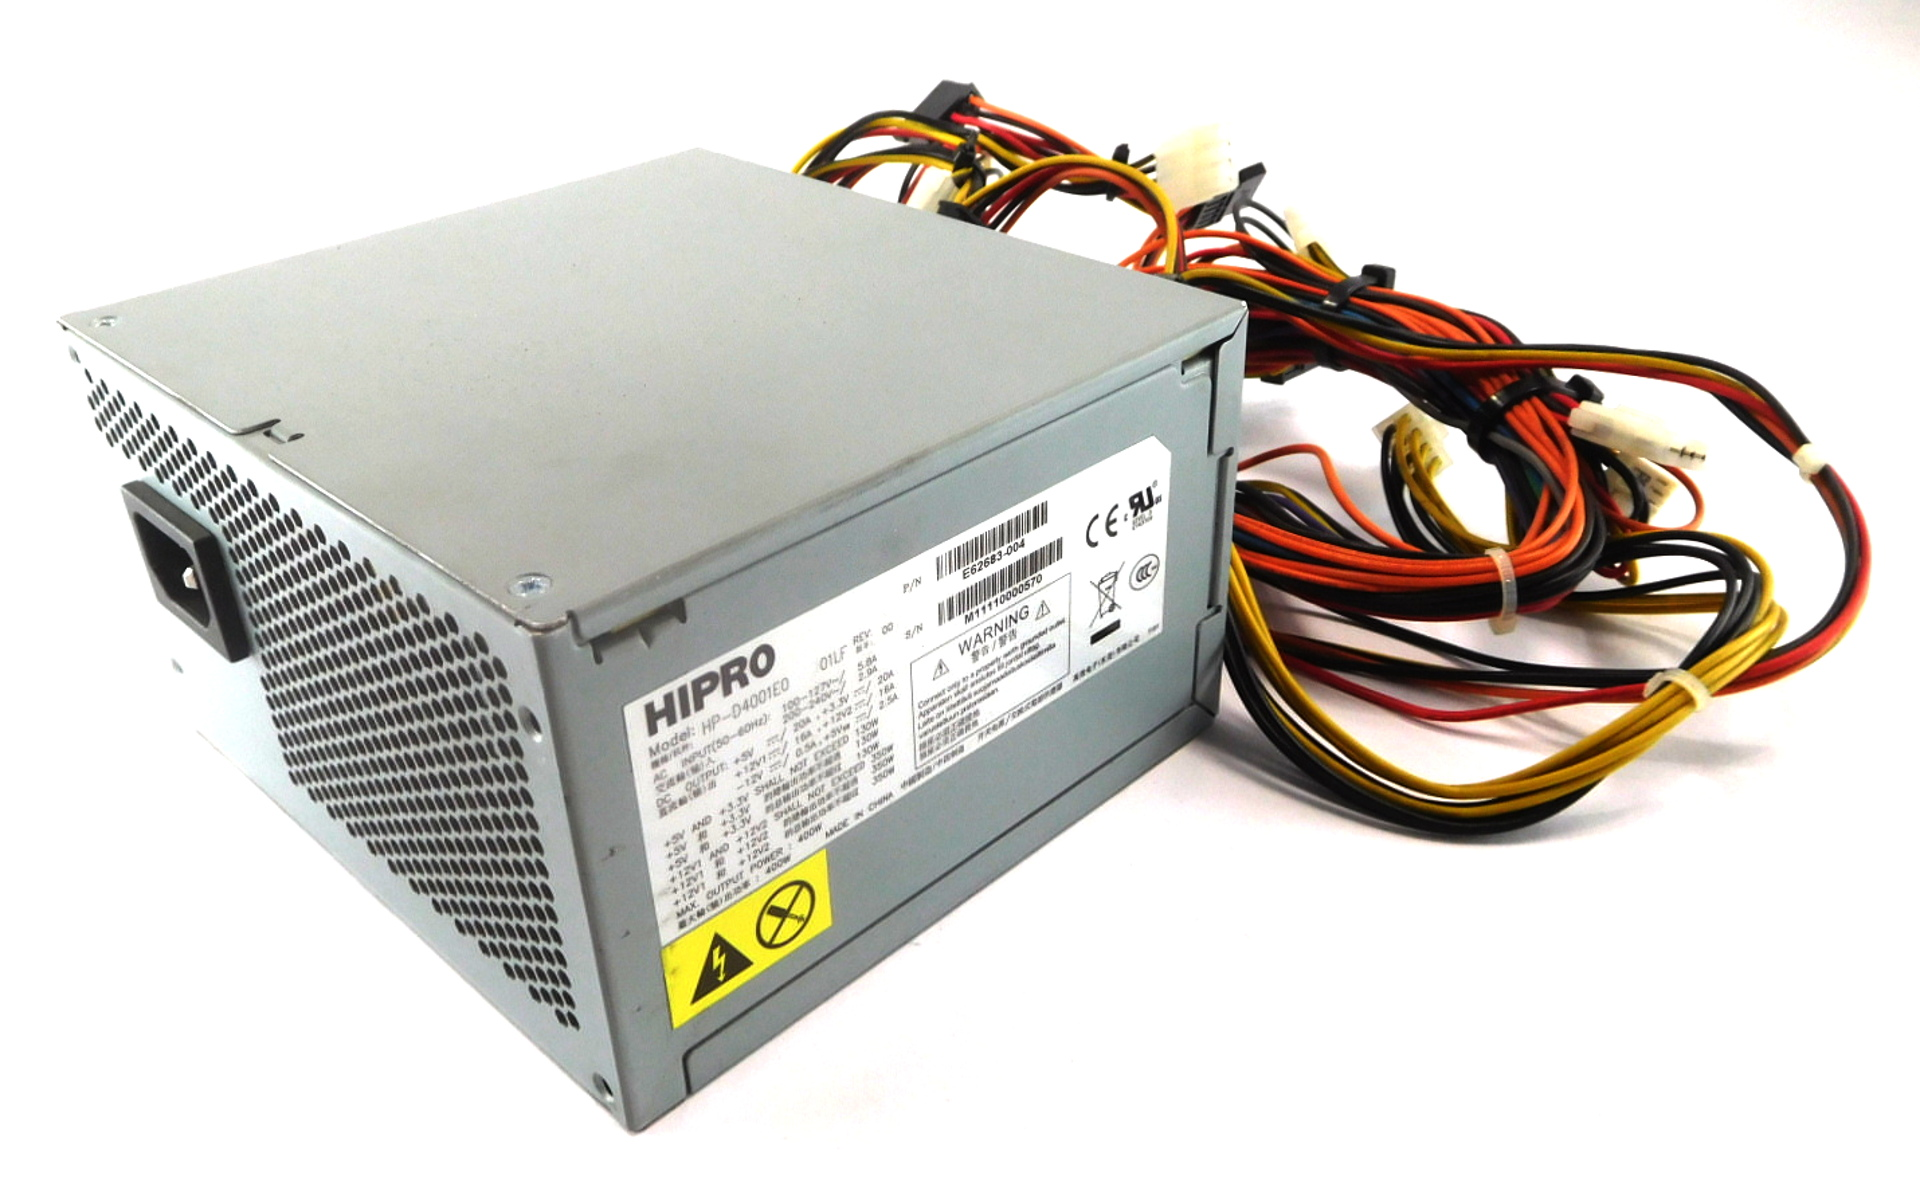 HIPRO HP-D4001E0 01LF 400W ATX Power Supply Unit E62683-004